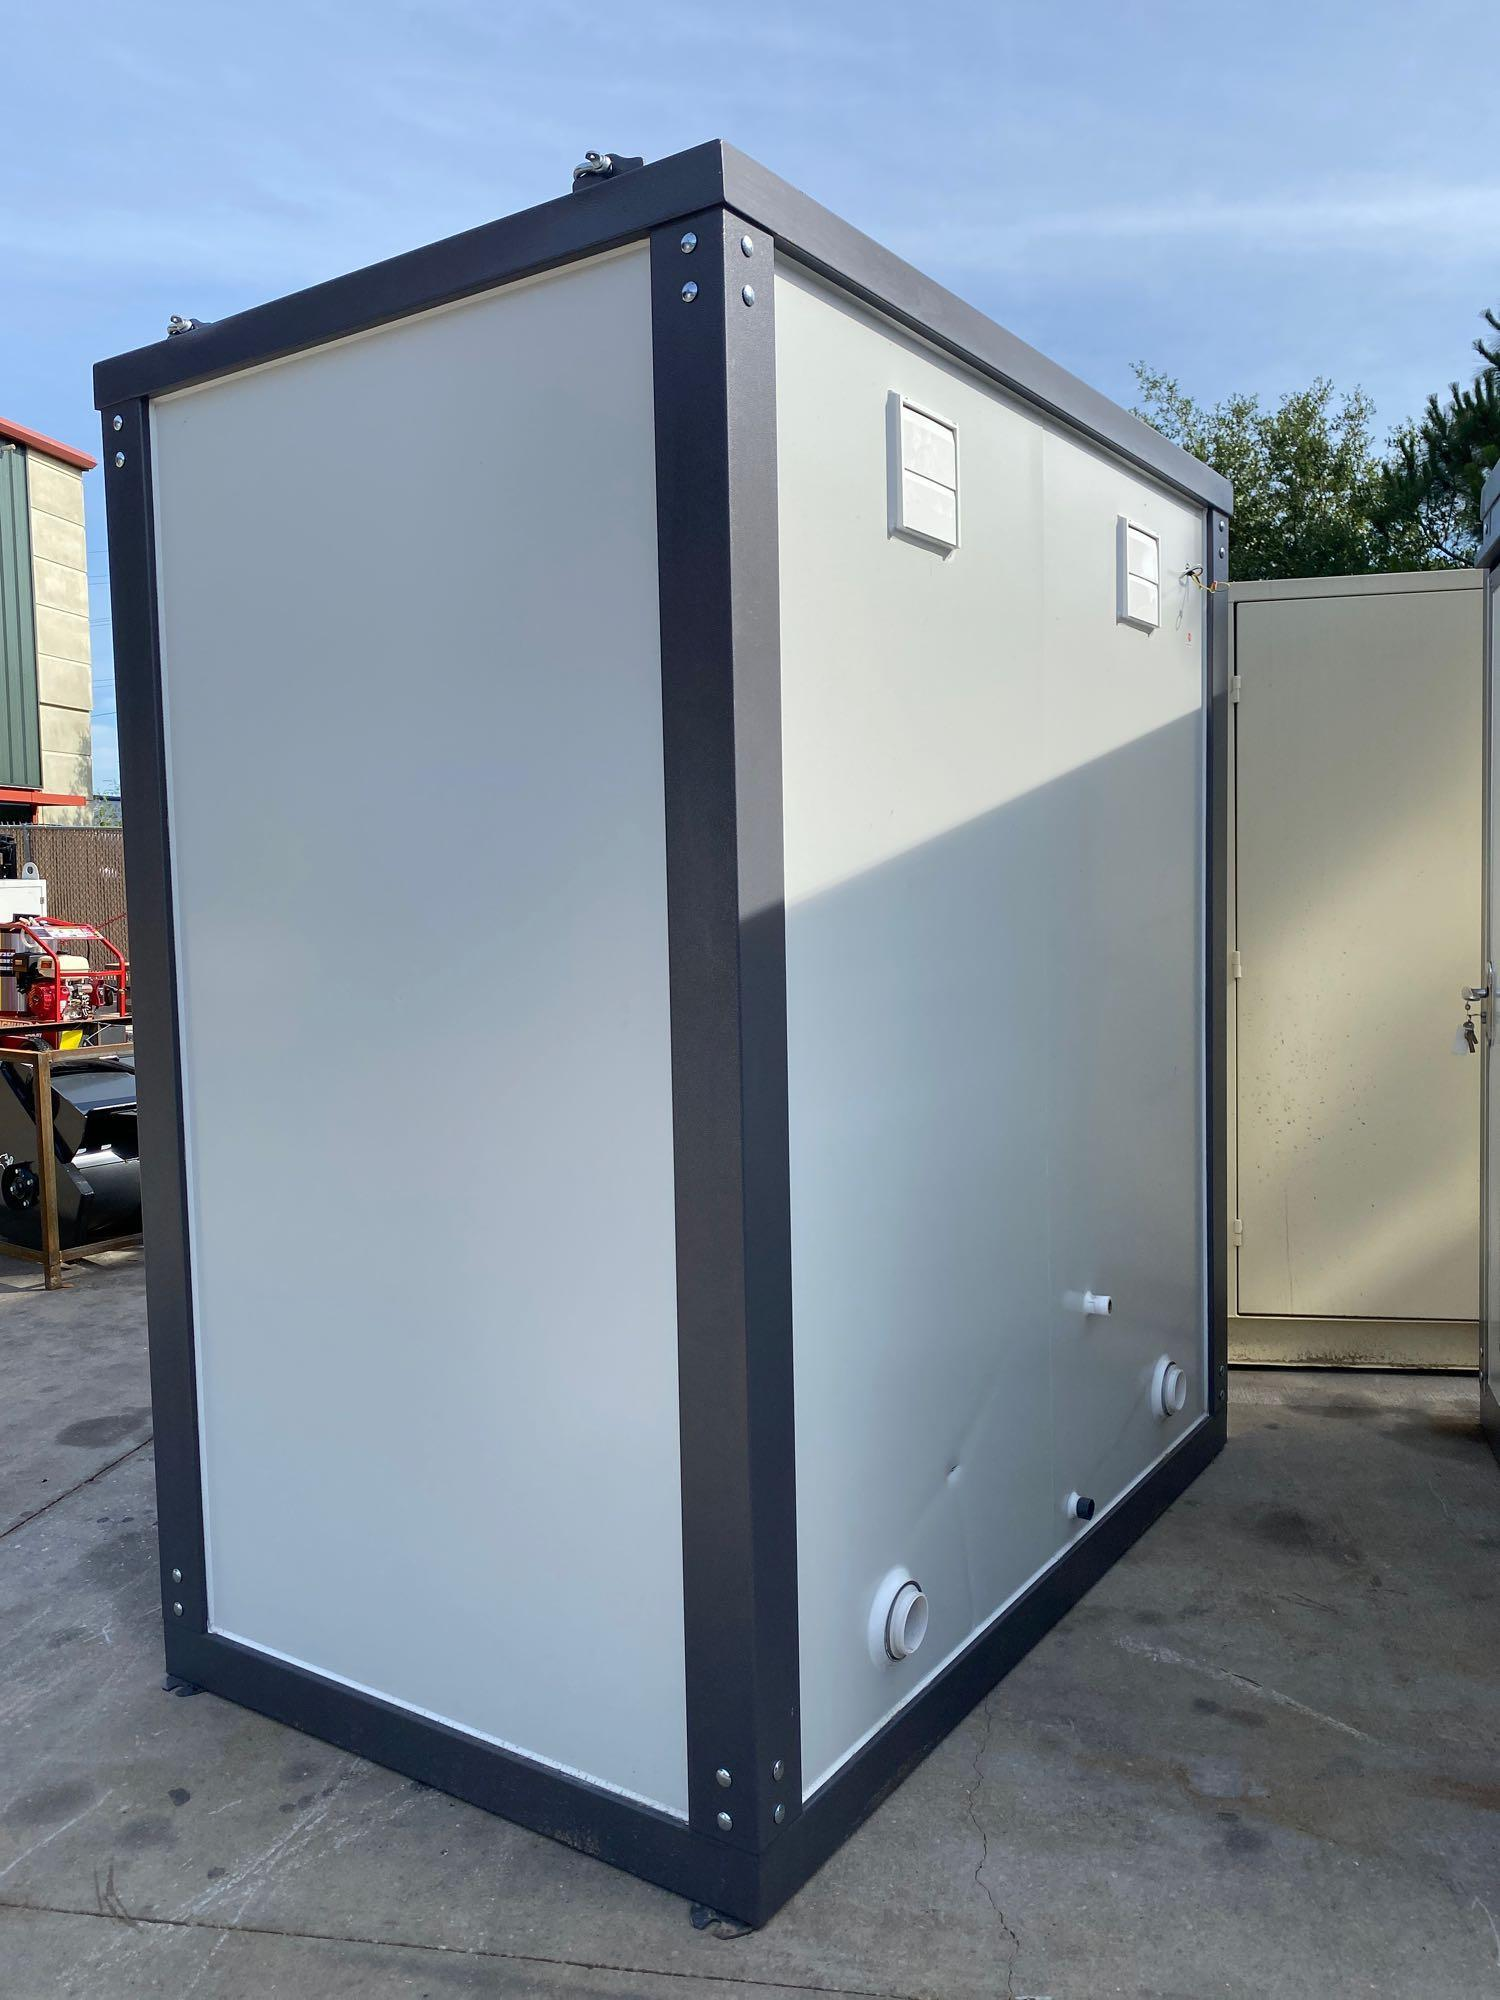 """NEW/UNUSED PORTABLE BATHROOM UNIT, TWO STALLS, PLUMBING AND ELECTRIC HOOKUP, 81"""" WIDE 90"""" TALL 51"""" D - Image 3 of 6"""